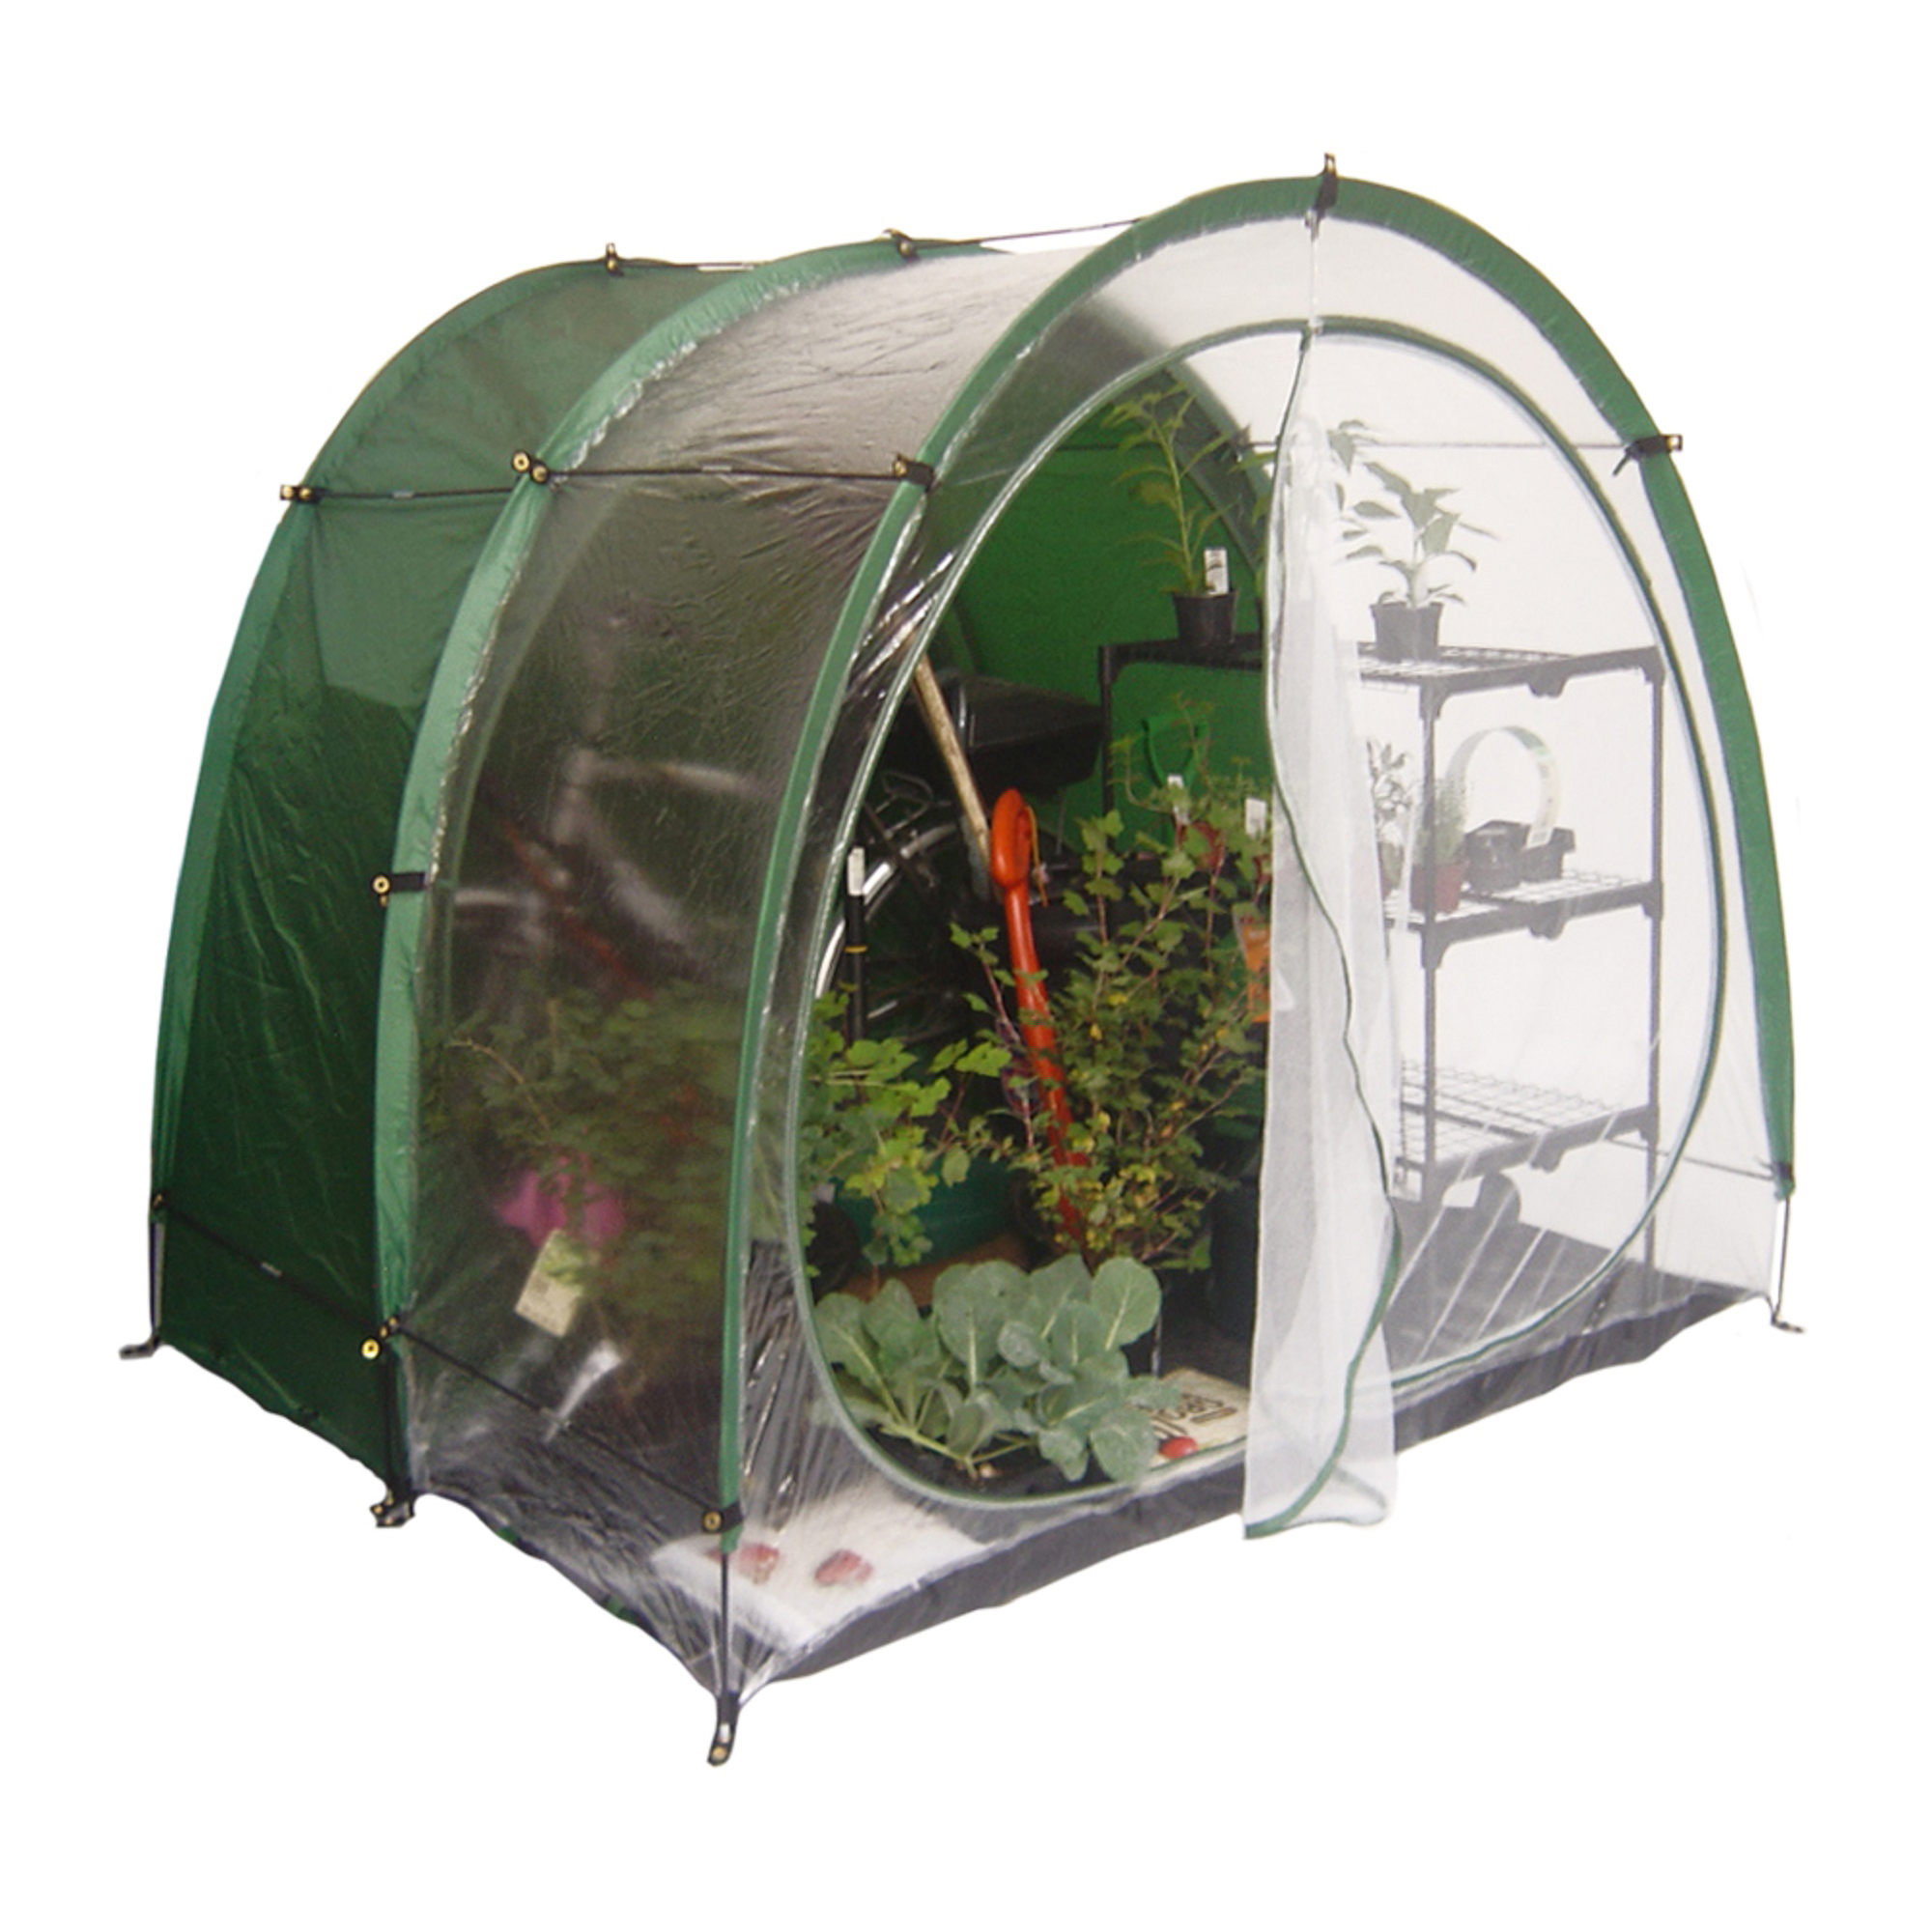 Modular Tent System Outdoor Storage Solutions Cave Innovations